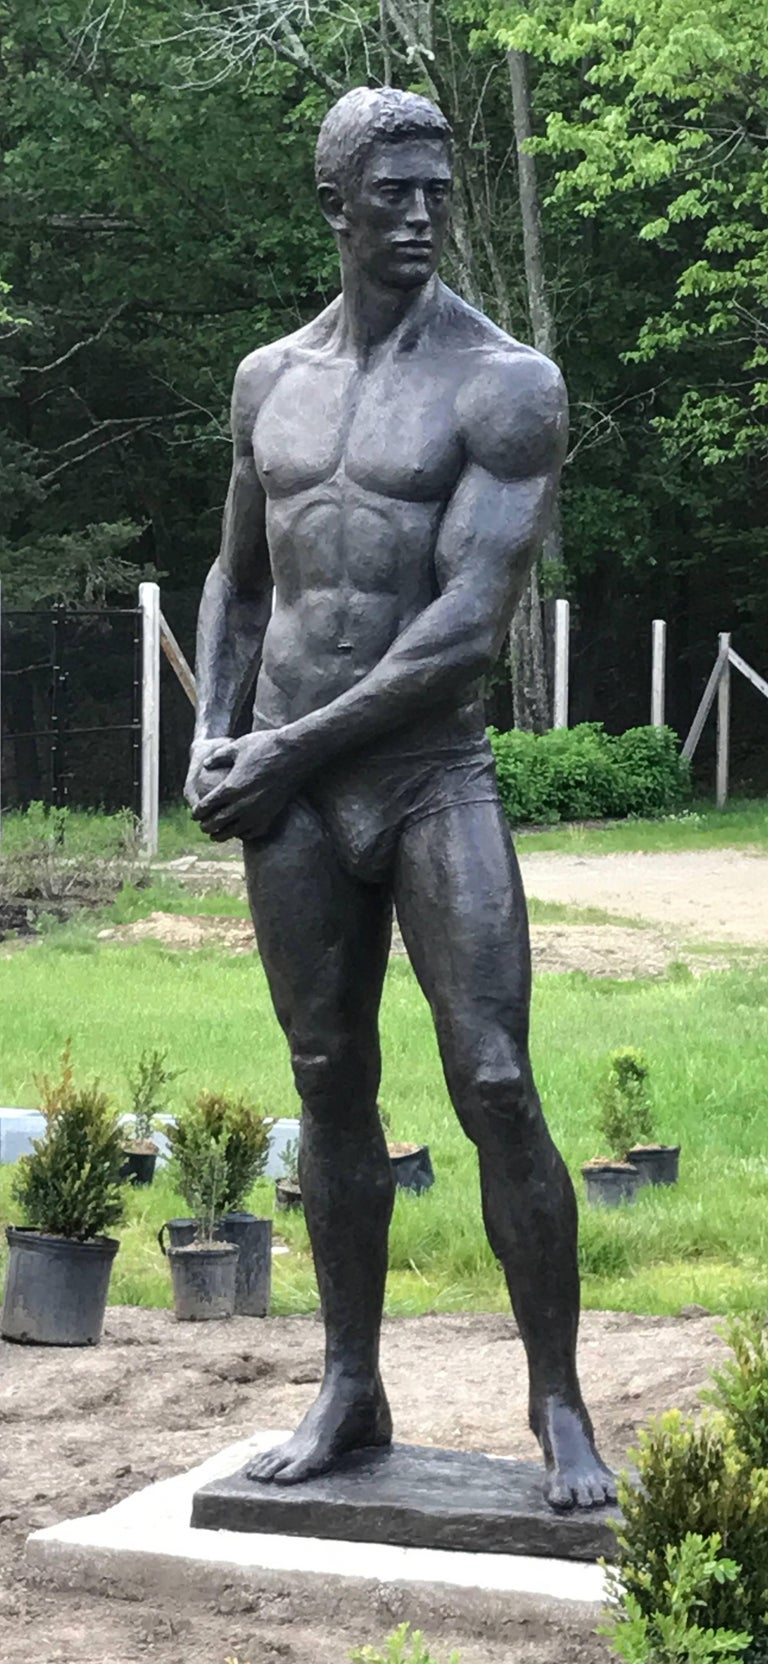 modern figurative bronze sculpture of a nude athlete  8.5 feet tall and measures 36 inches at the widest point bottom base measures 31.5 x 17.5 inches This sculpture is offered by Carrie Haddad Gallery, located in Hudson, NY.  This figurative bronze